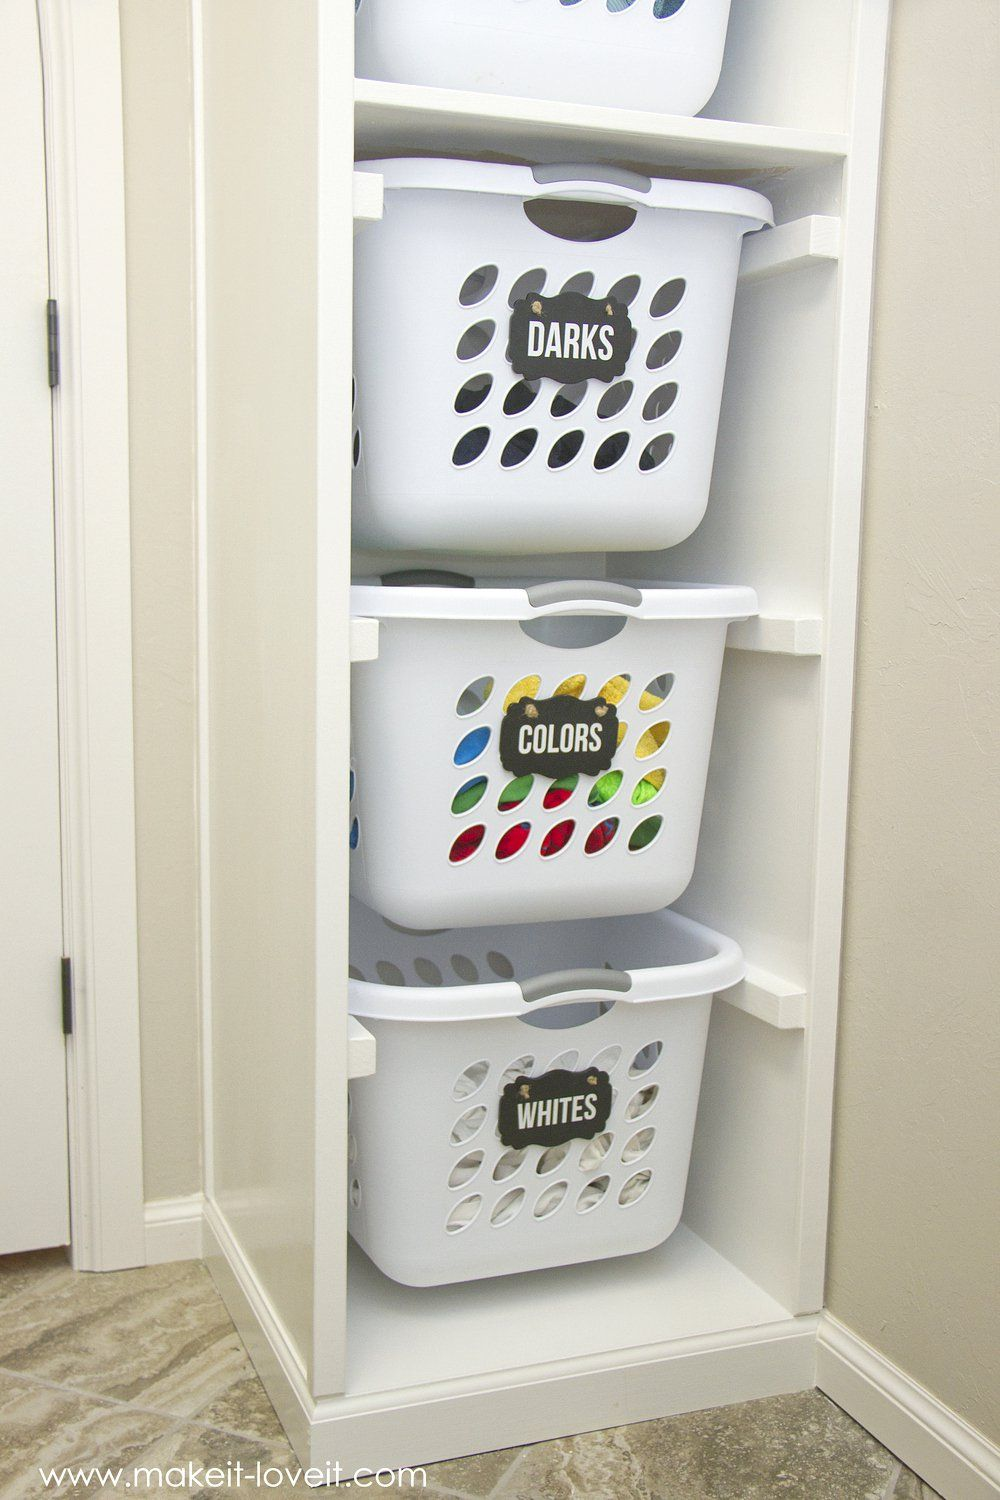 Laundry Basket Ideas diy laundry basket organizer (...built in) | make it and love it AHNNKVQ